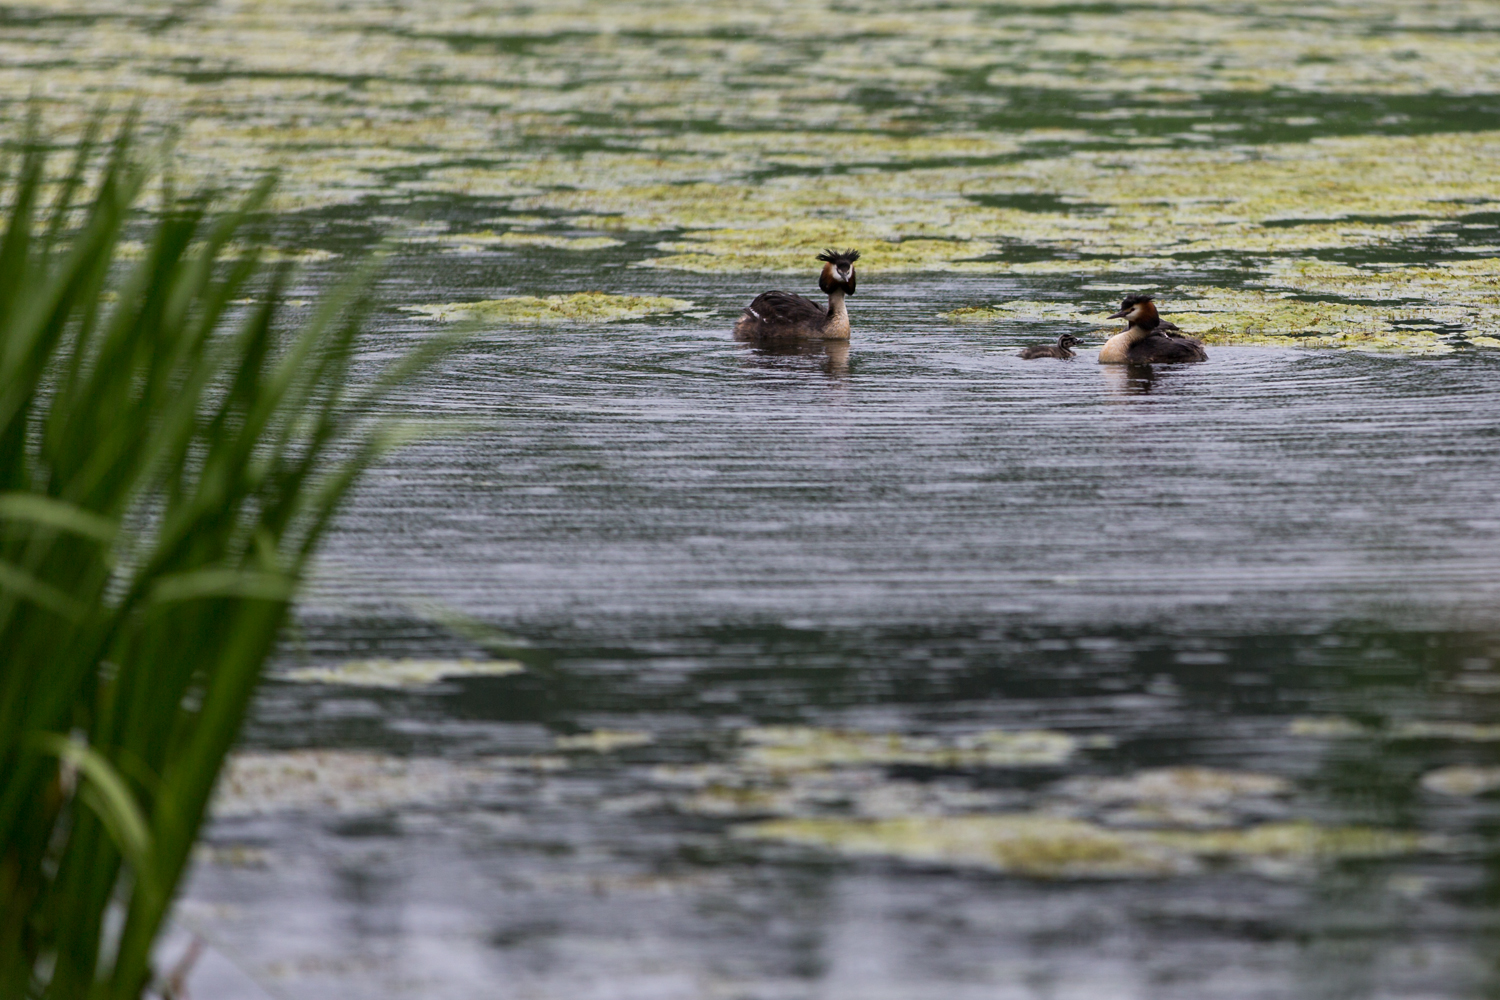 Great Crested Grebes giving the little one a swimming lesson.